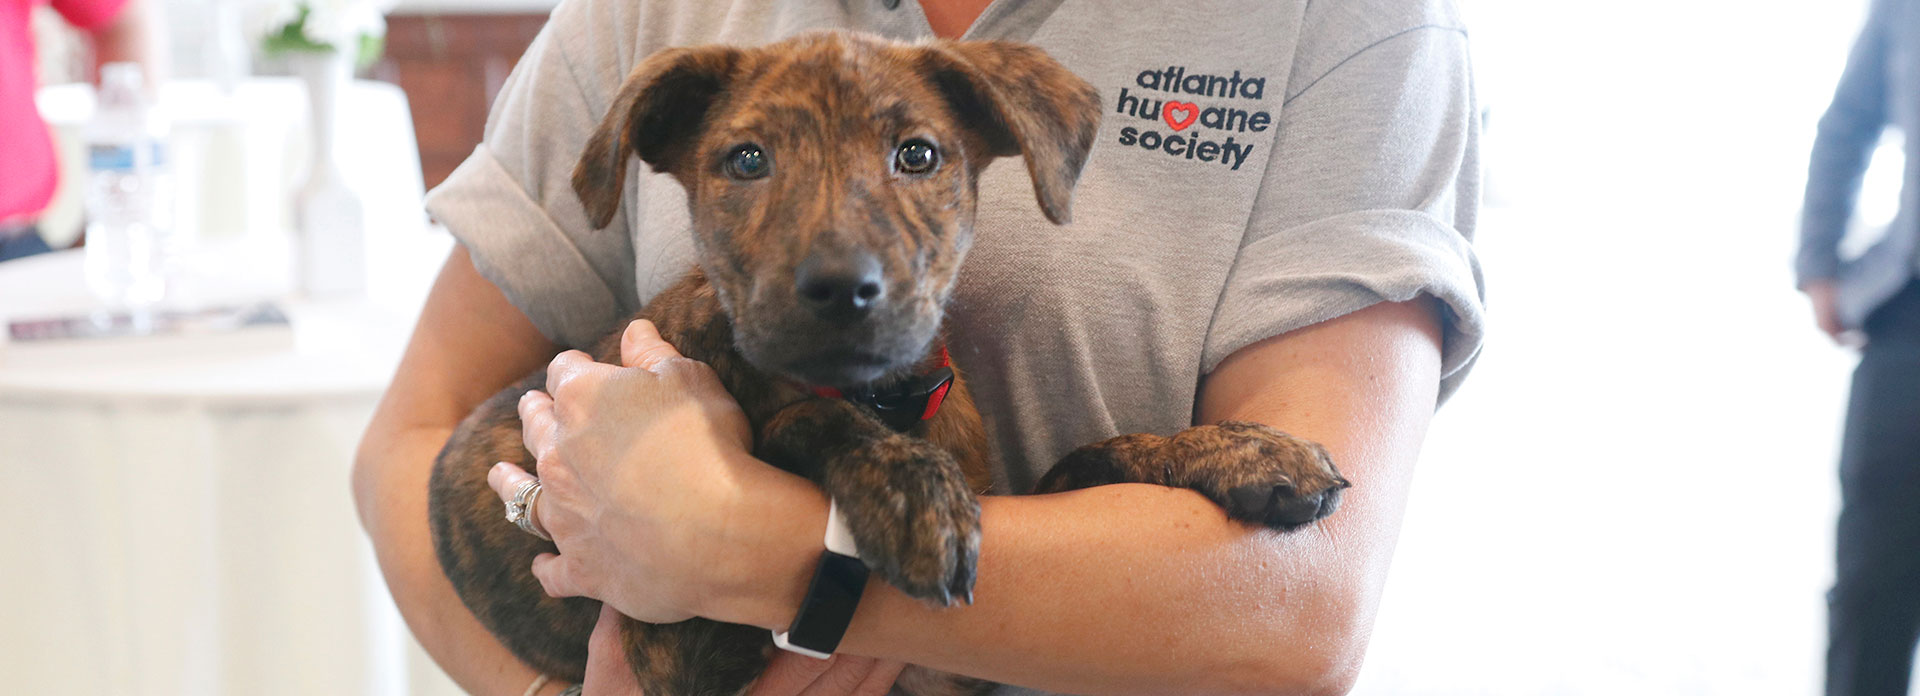 Businesses that give back make a lifesaving difference for puppies like this brown one being held